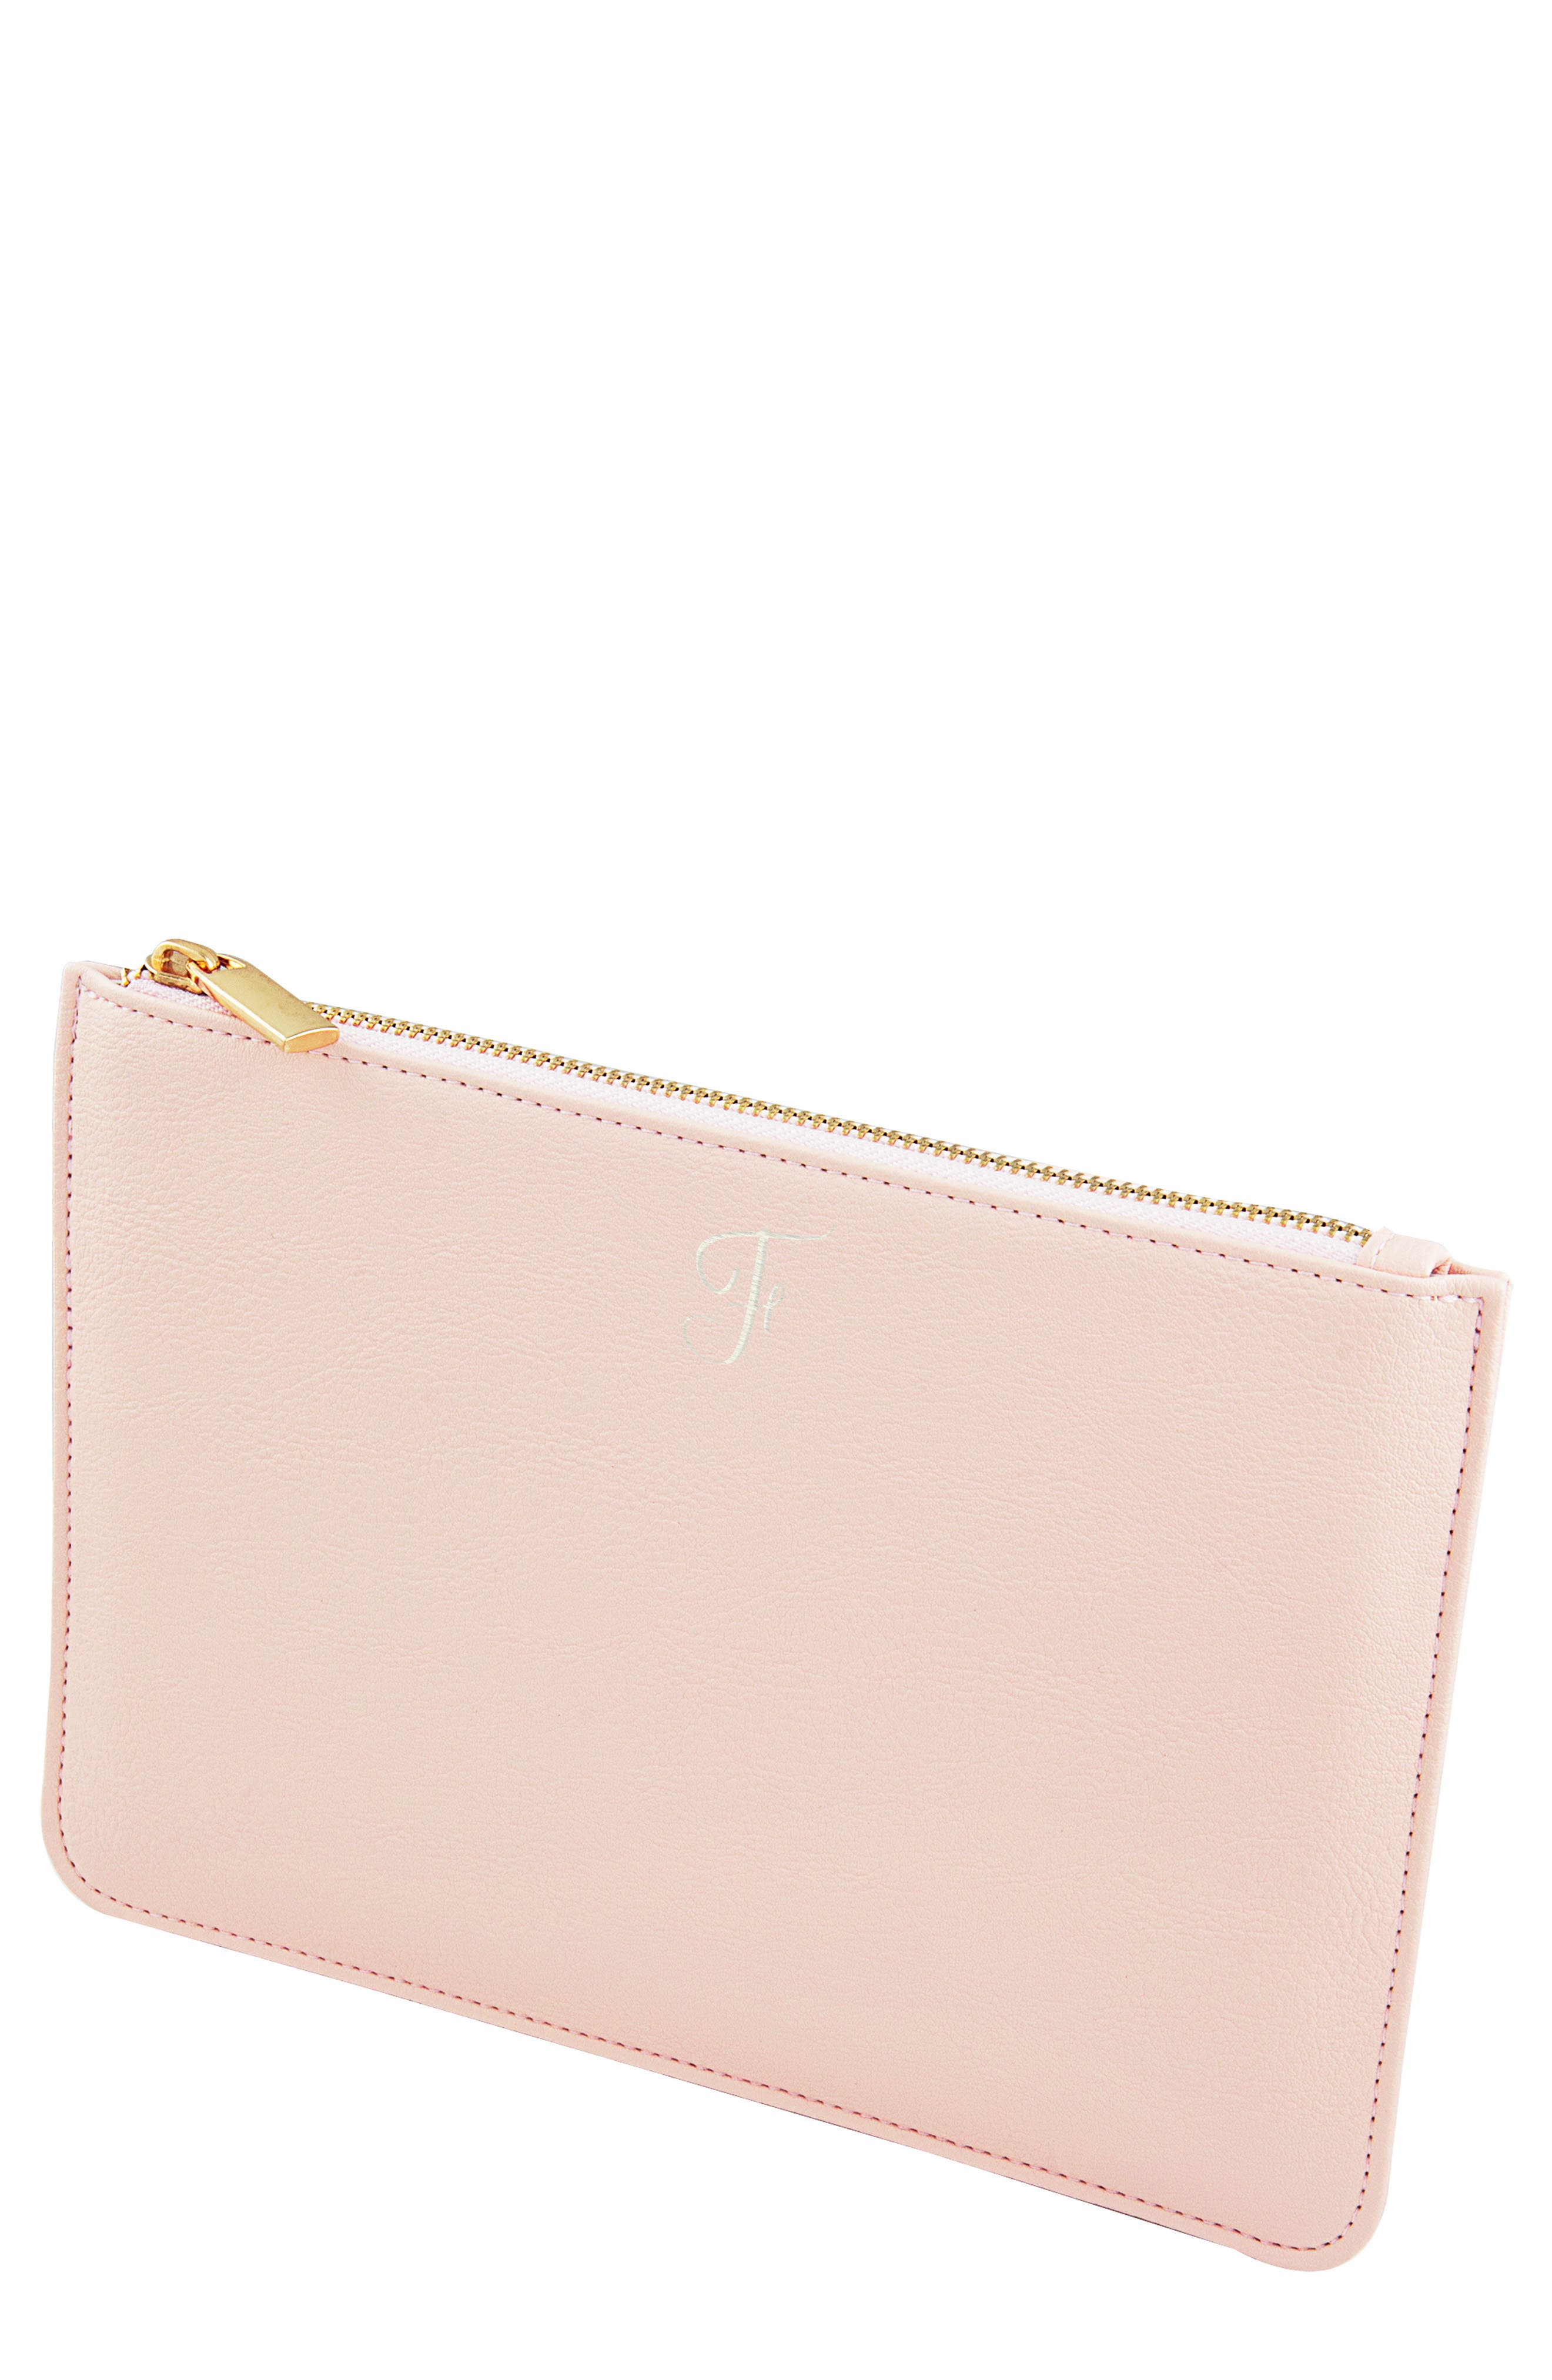 Personalized Faux Leather Pouch,                         Main,                         color, BLUSH PINK F